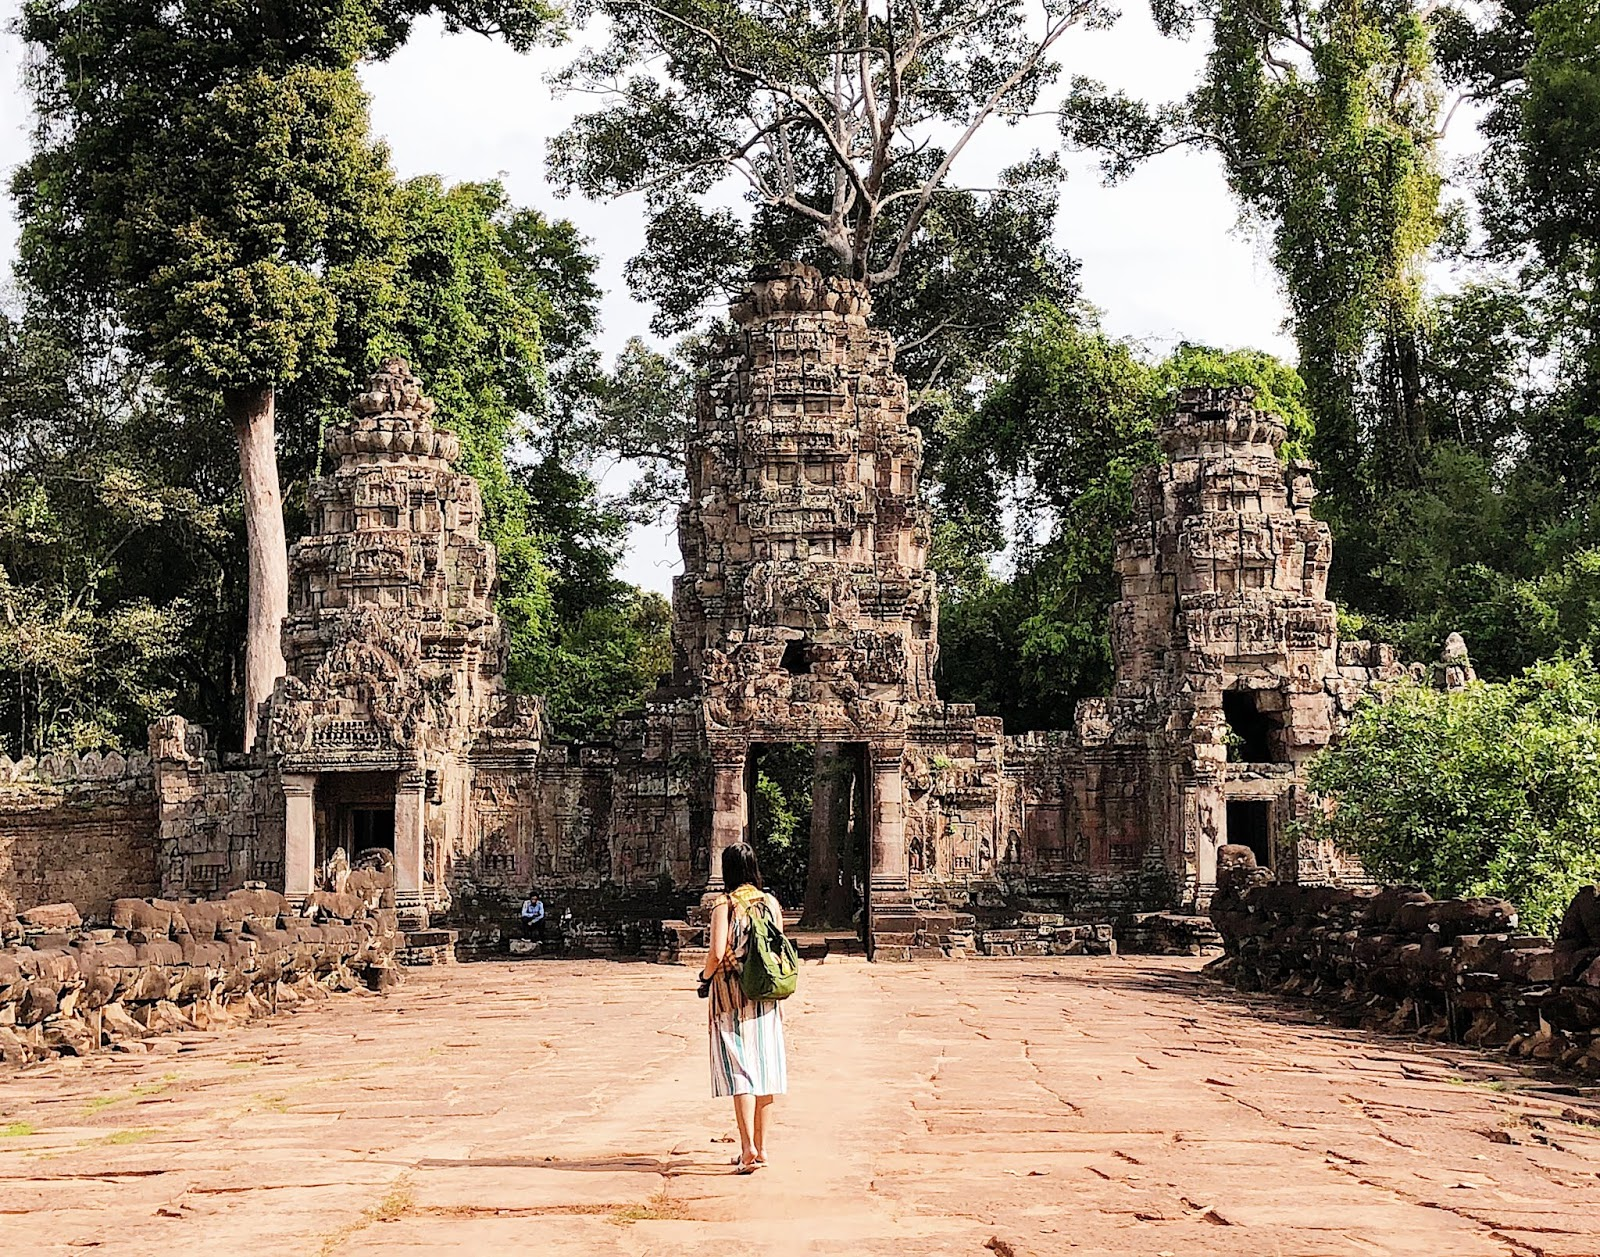 Siem Reap: Real Life Temple Run